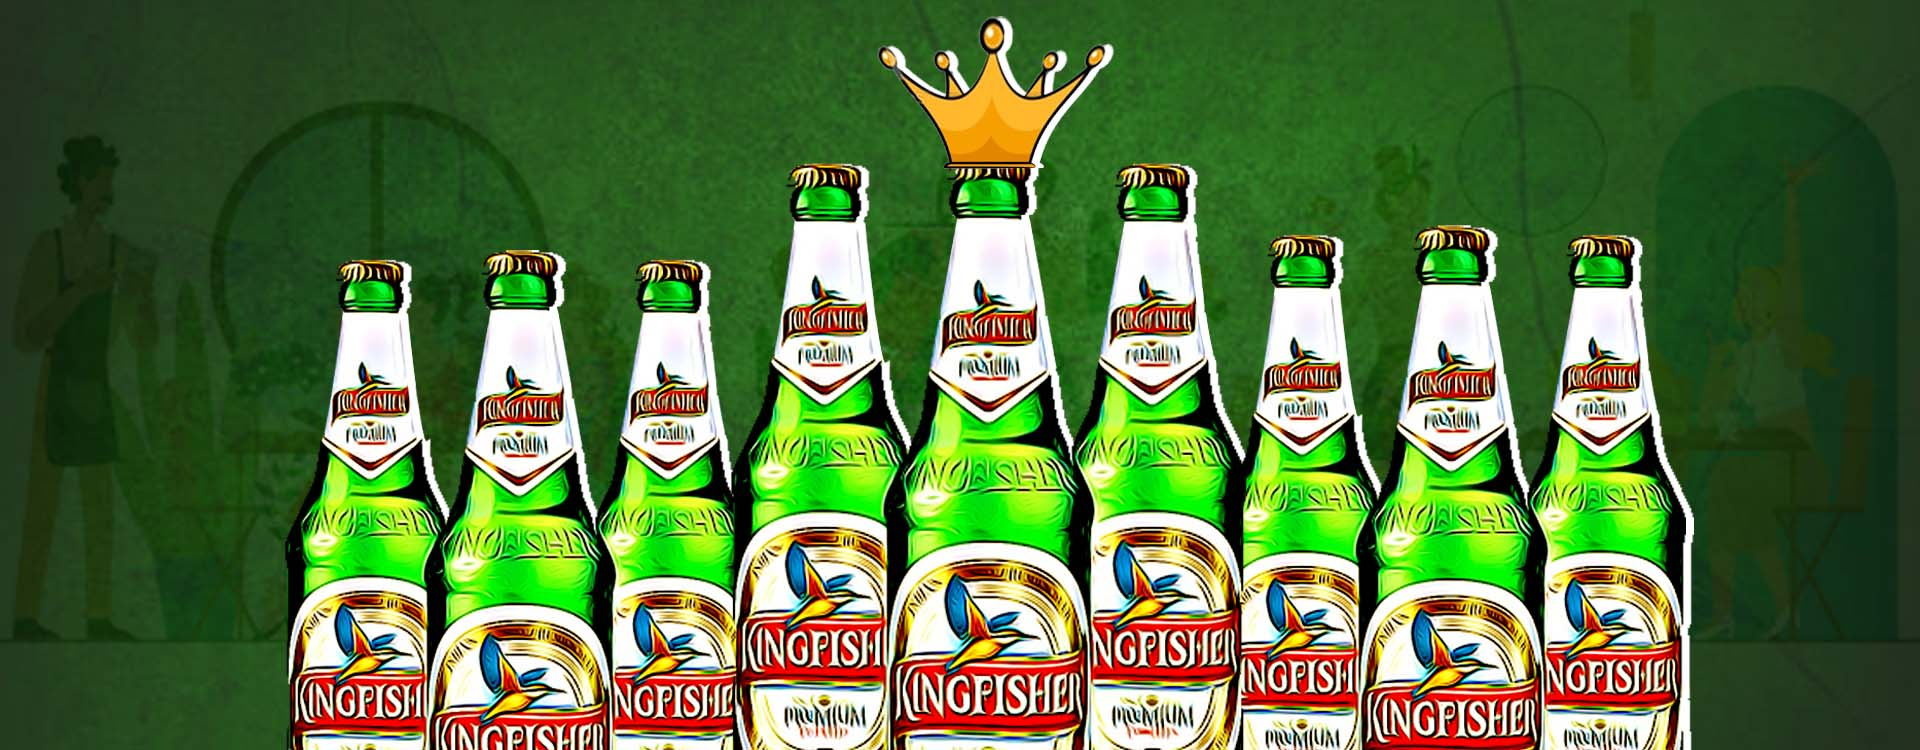 Is Kingfisher Beer the King When You Cover More than 50%? of the Market Share